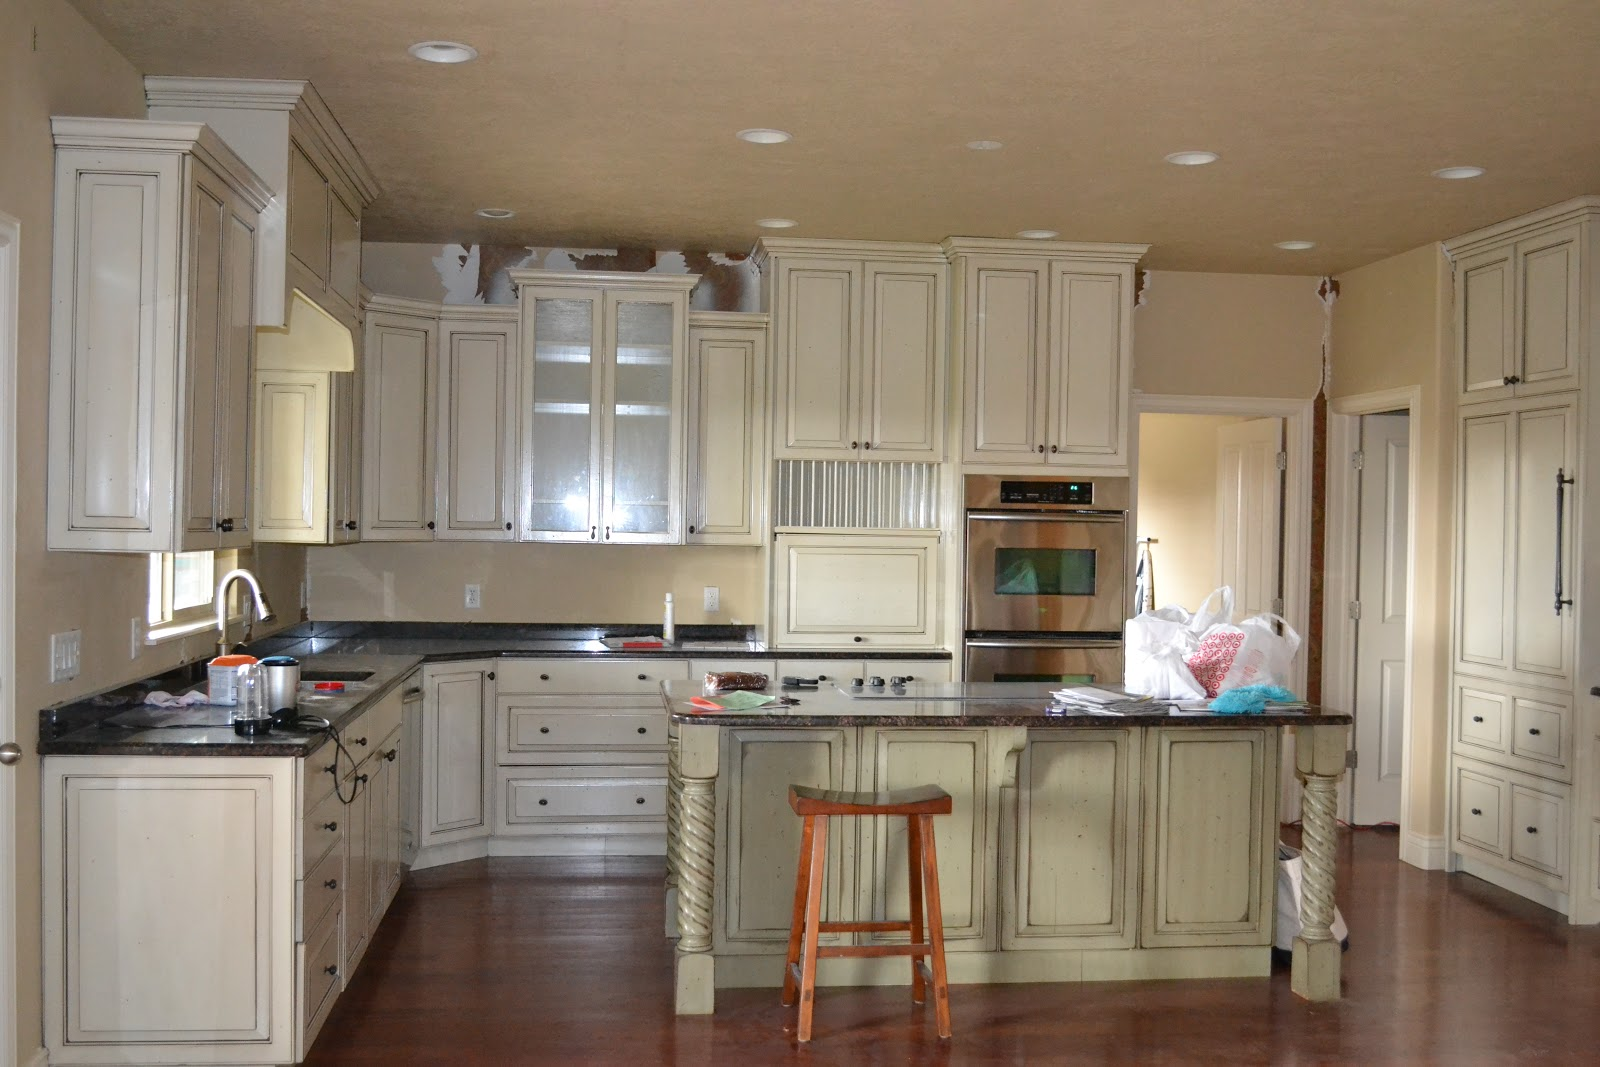 Paint Colors with White Cabinets to Go